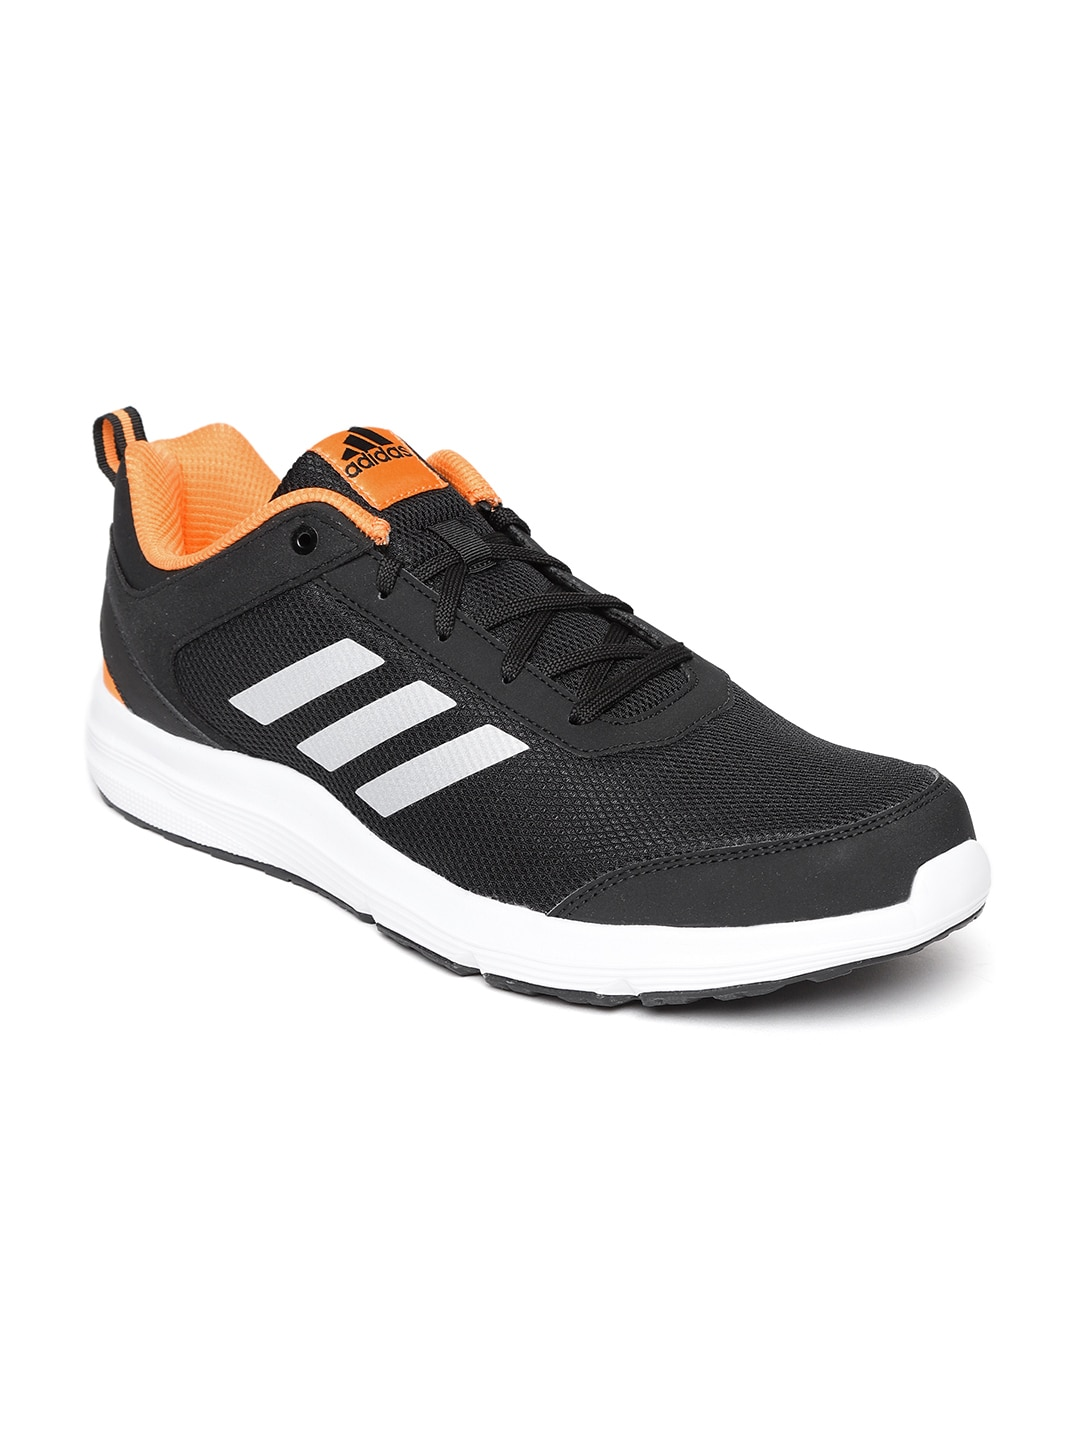 433c5b6a2 Adidas Running Shoes - Buy Adidas Running Shoes Online